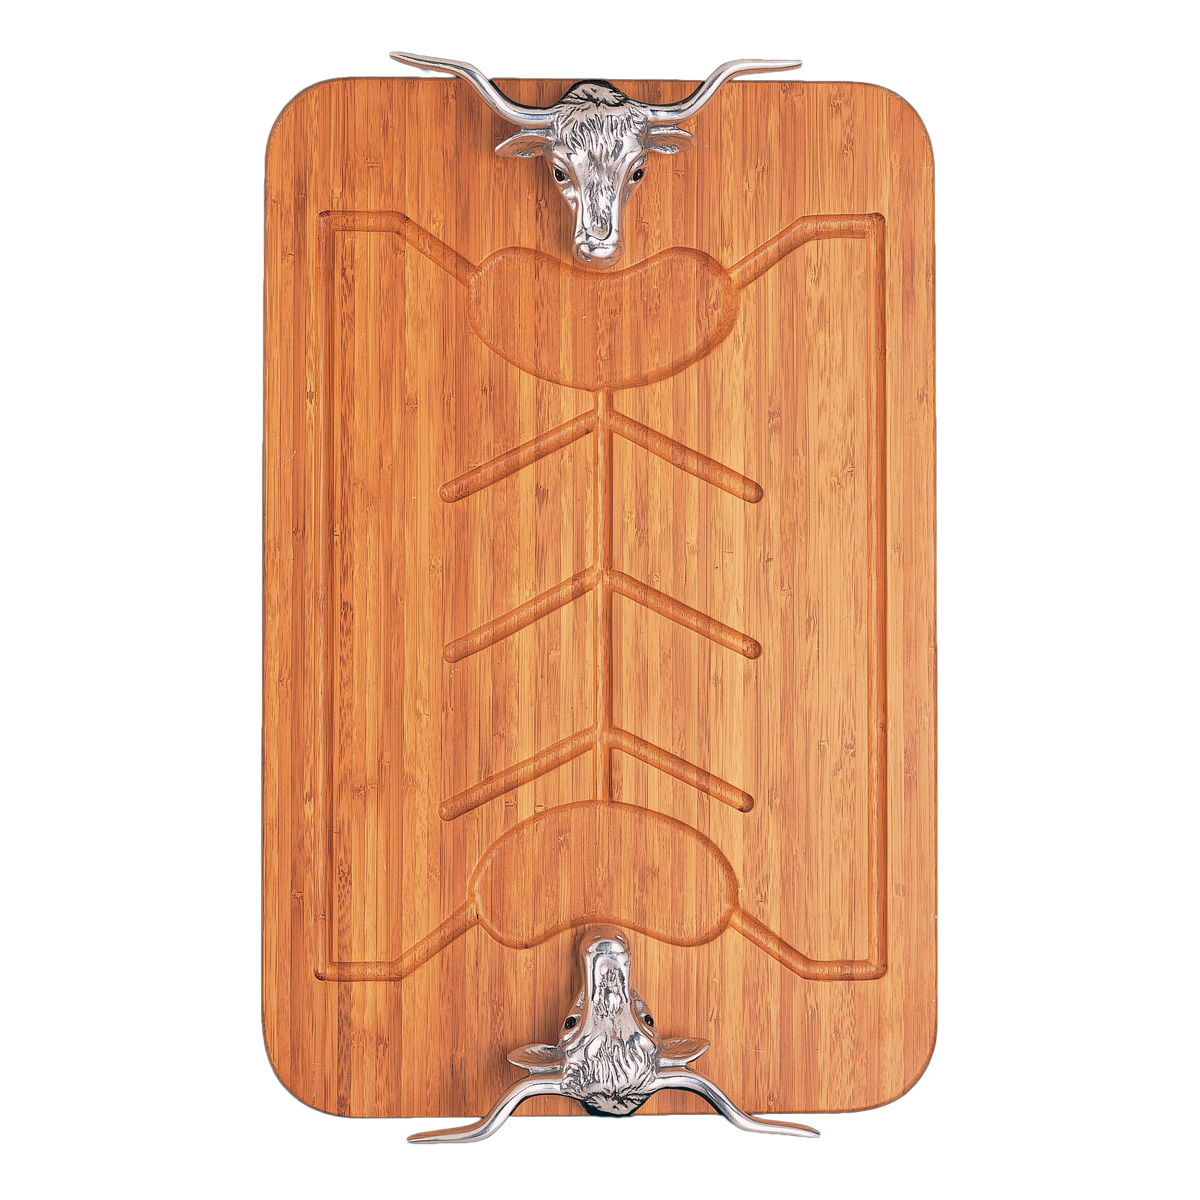 Longhorn Bamboo Carving Board - OUT OF STOCK UNTIL 2/15/2021